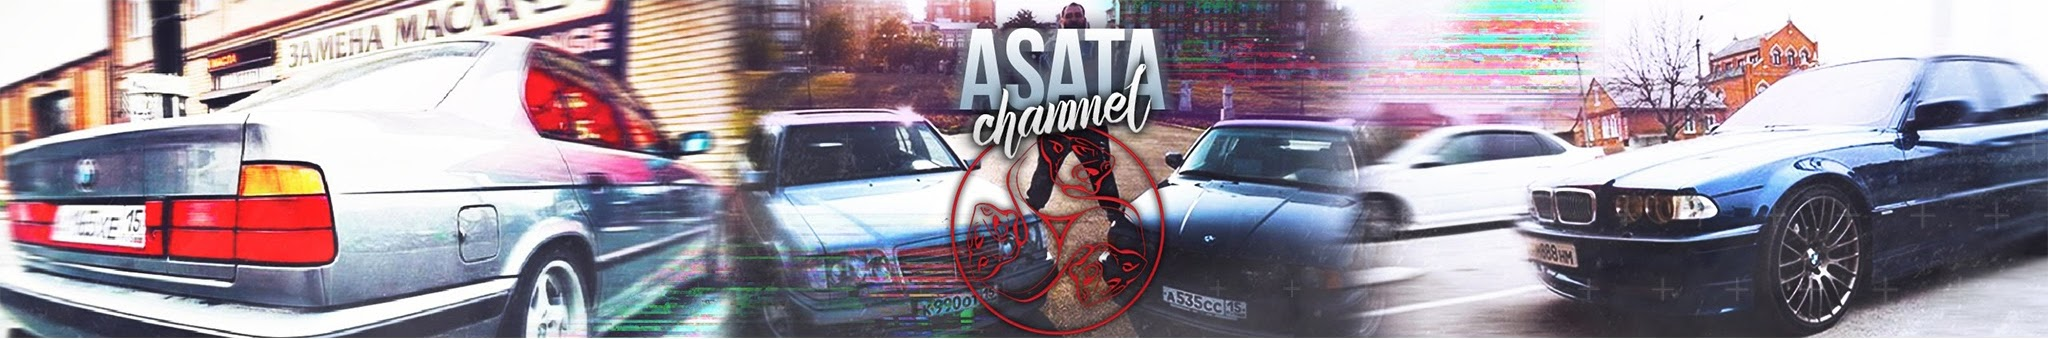 ASATA channel